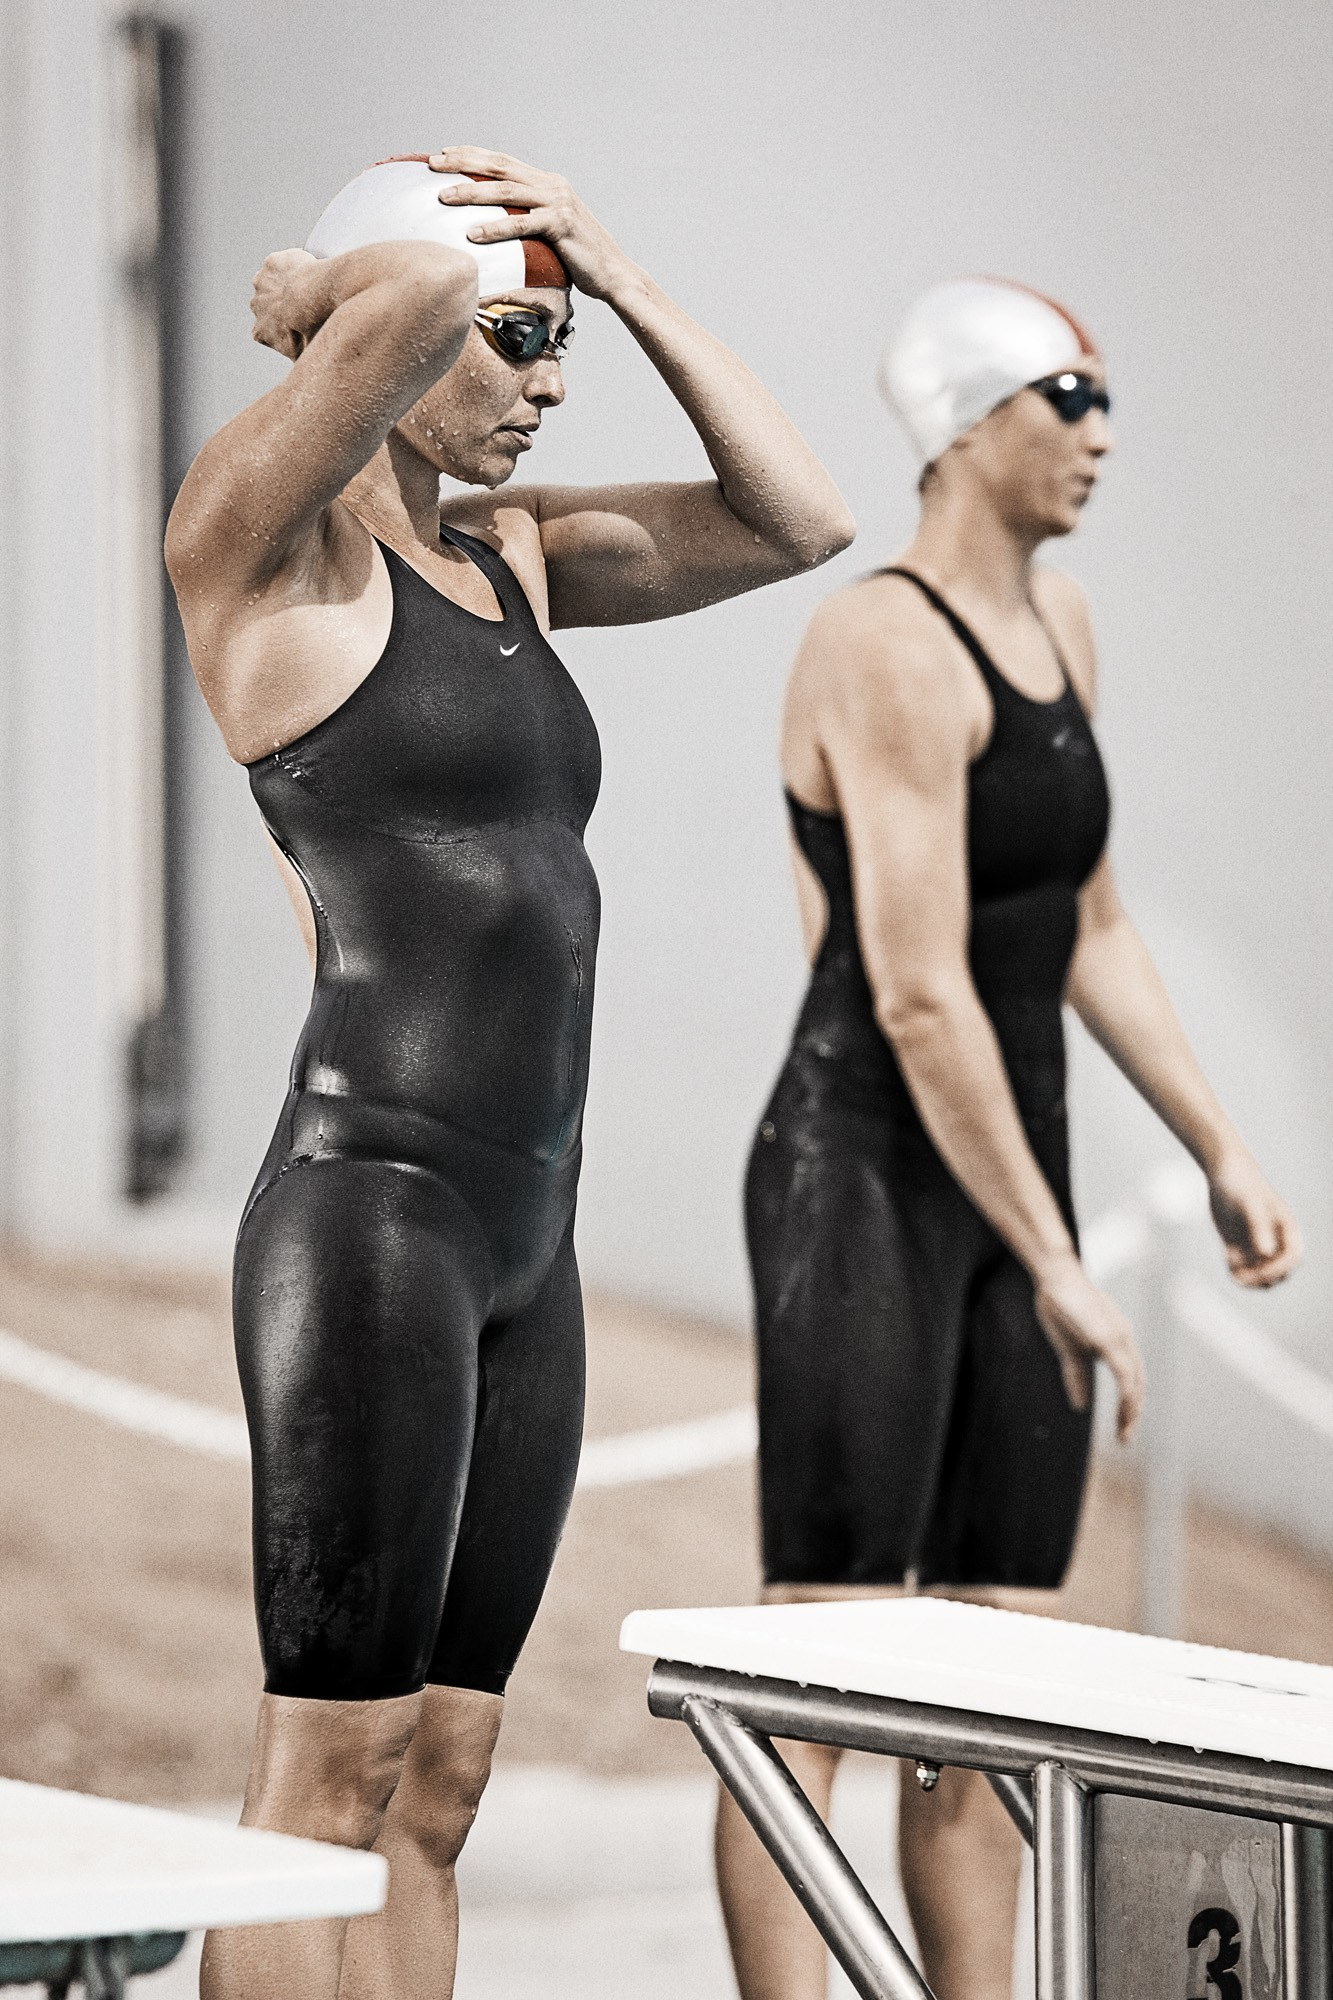 The 2013 Nike Swim Photo Vault